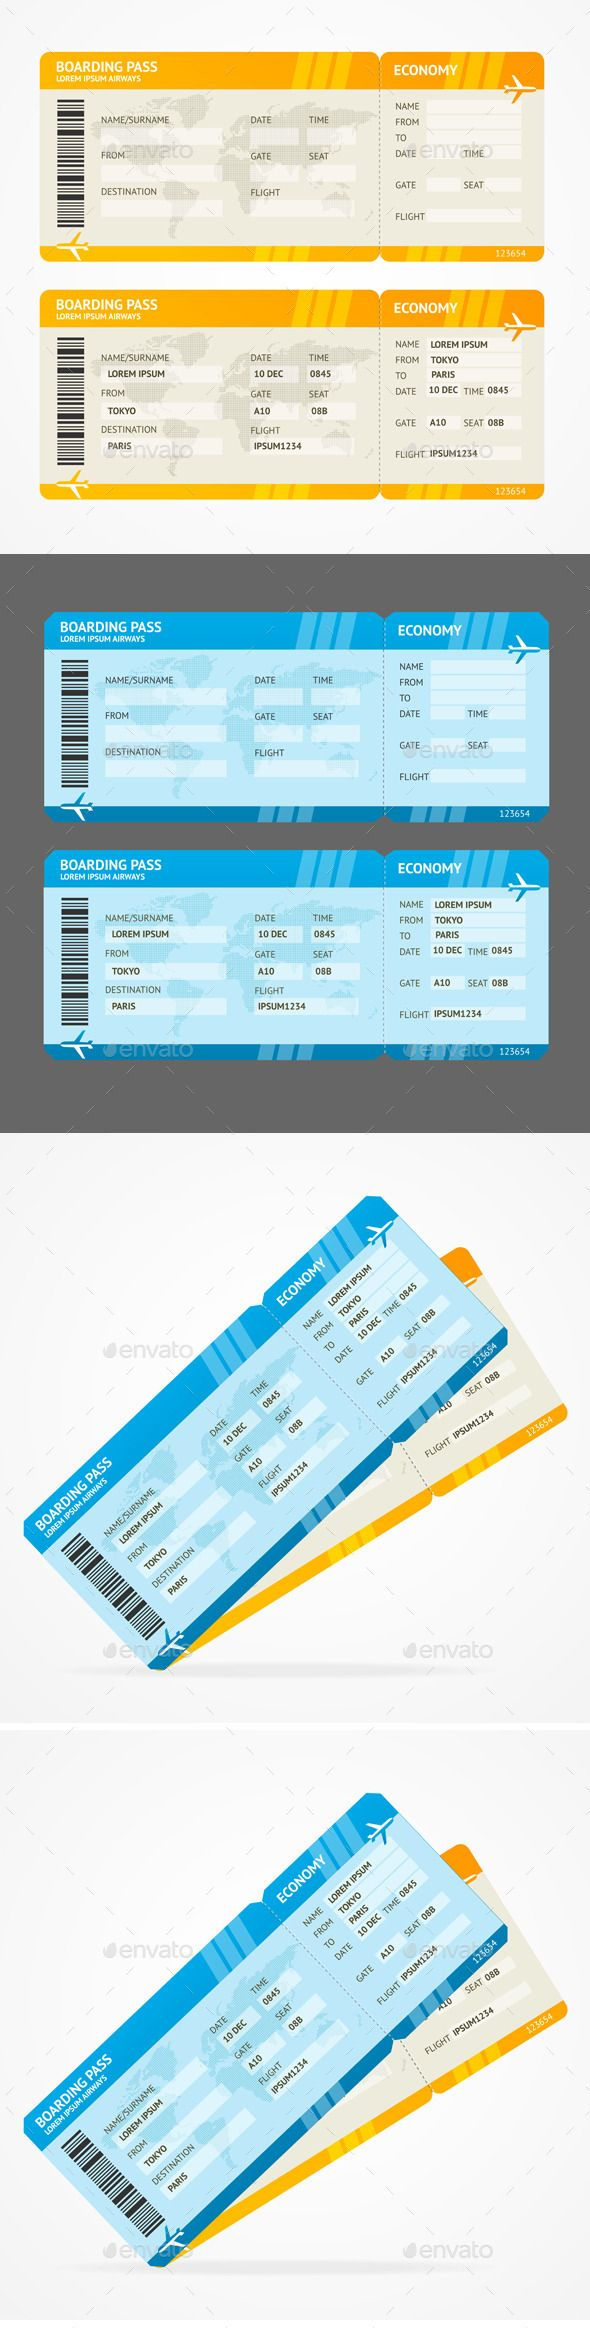 Vector Modern Airline Boarding Pass Tickets — Vector EPS #gate #flight • Available here → https://graphicriver.net/item/vector-modern-airline-boarding-pass-tickets/11428004?ref=pxcr